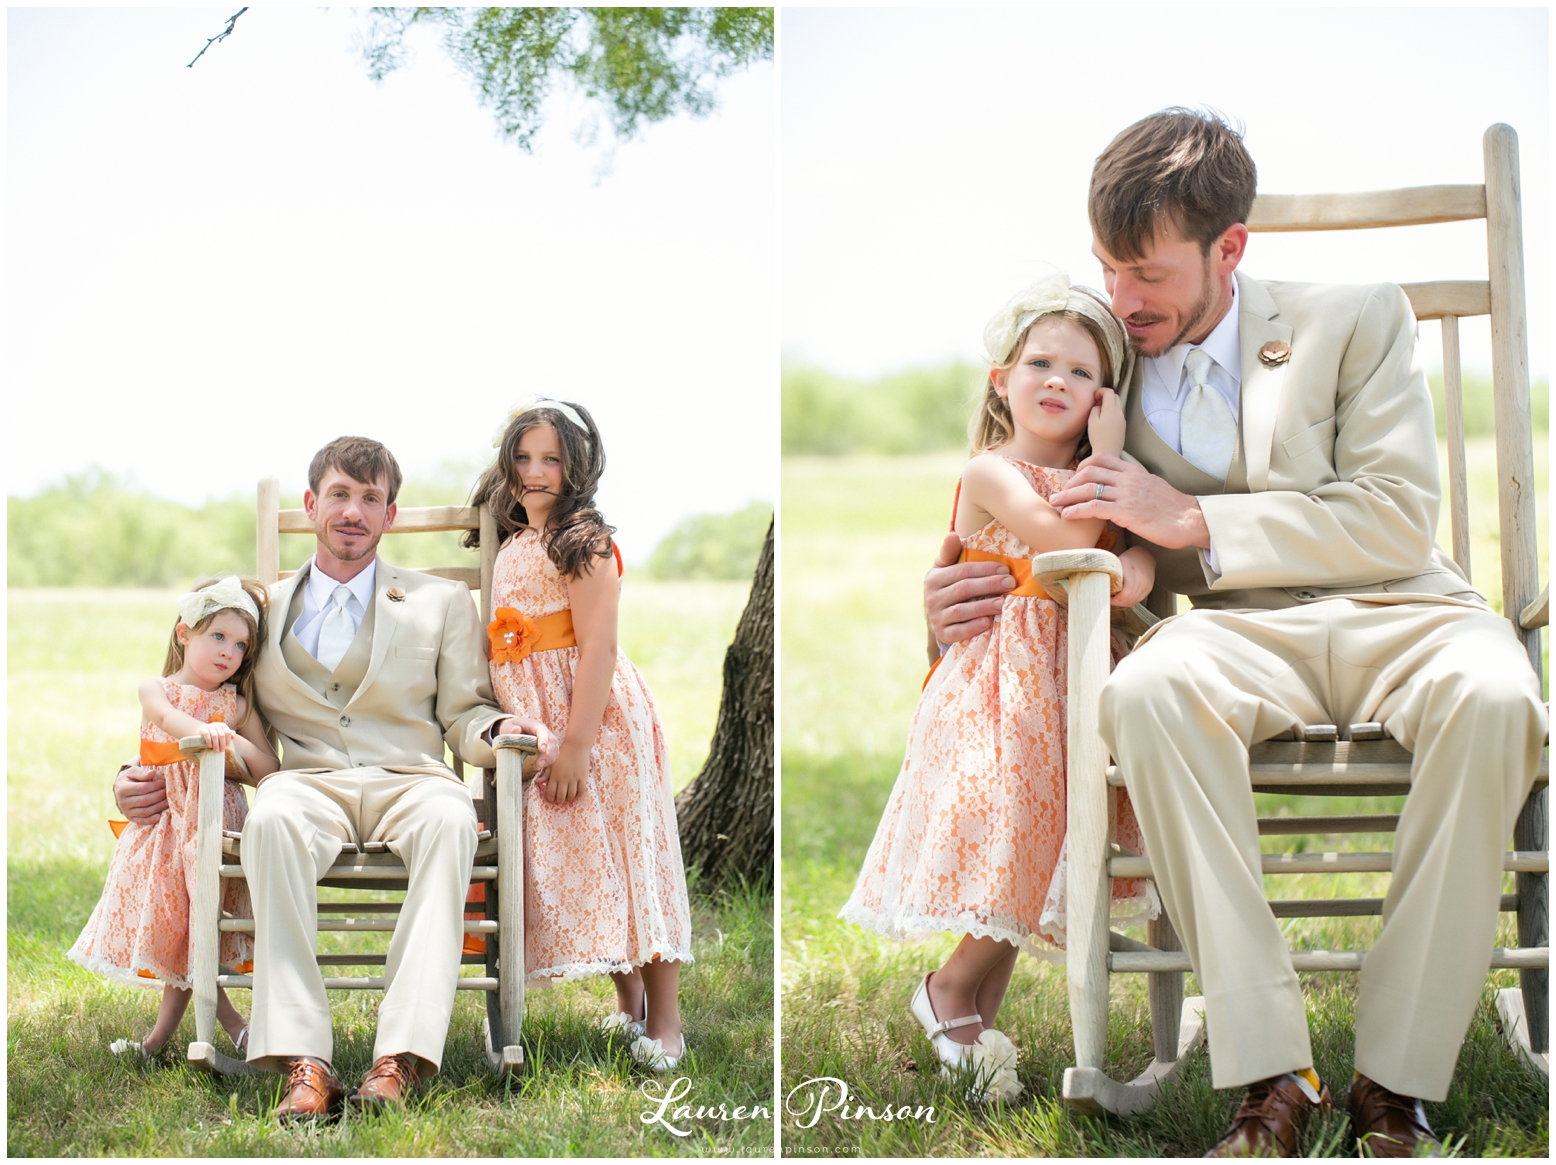 wichita-falls-coyote-ranch-resort-wedding-texas-photography-family-ceremony-balloons-rustic-lace_0322.jpg